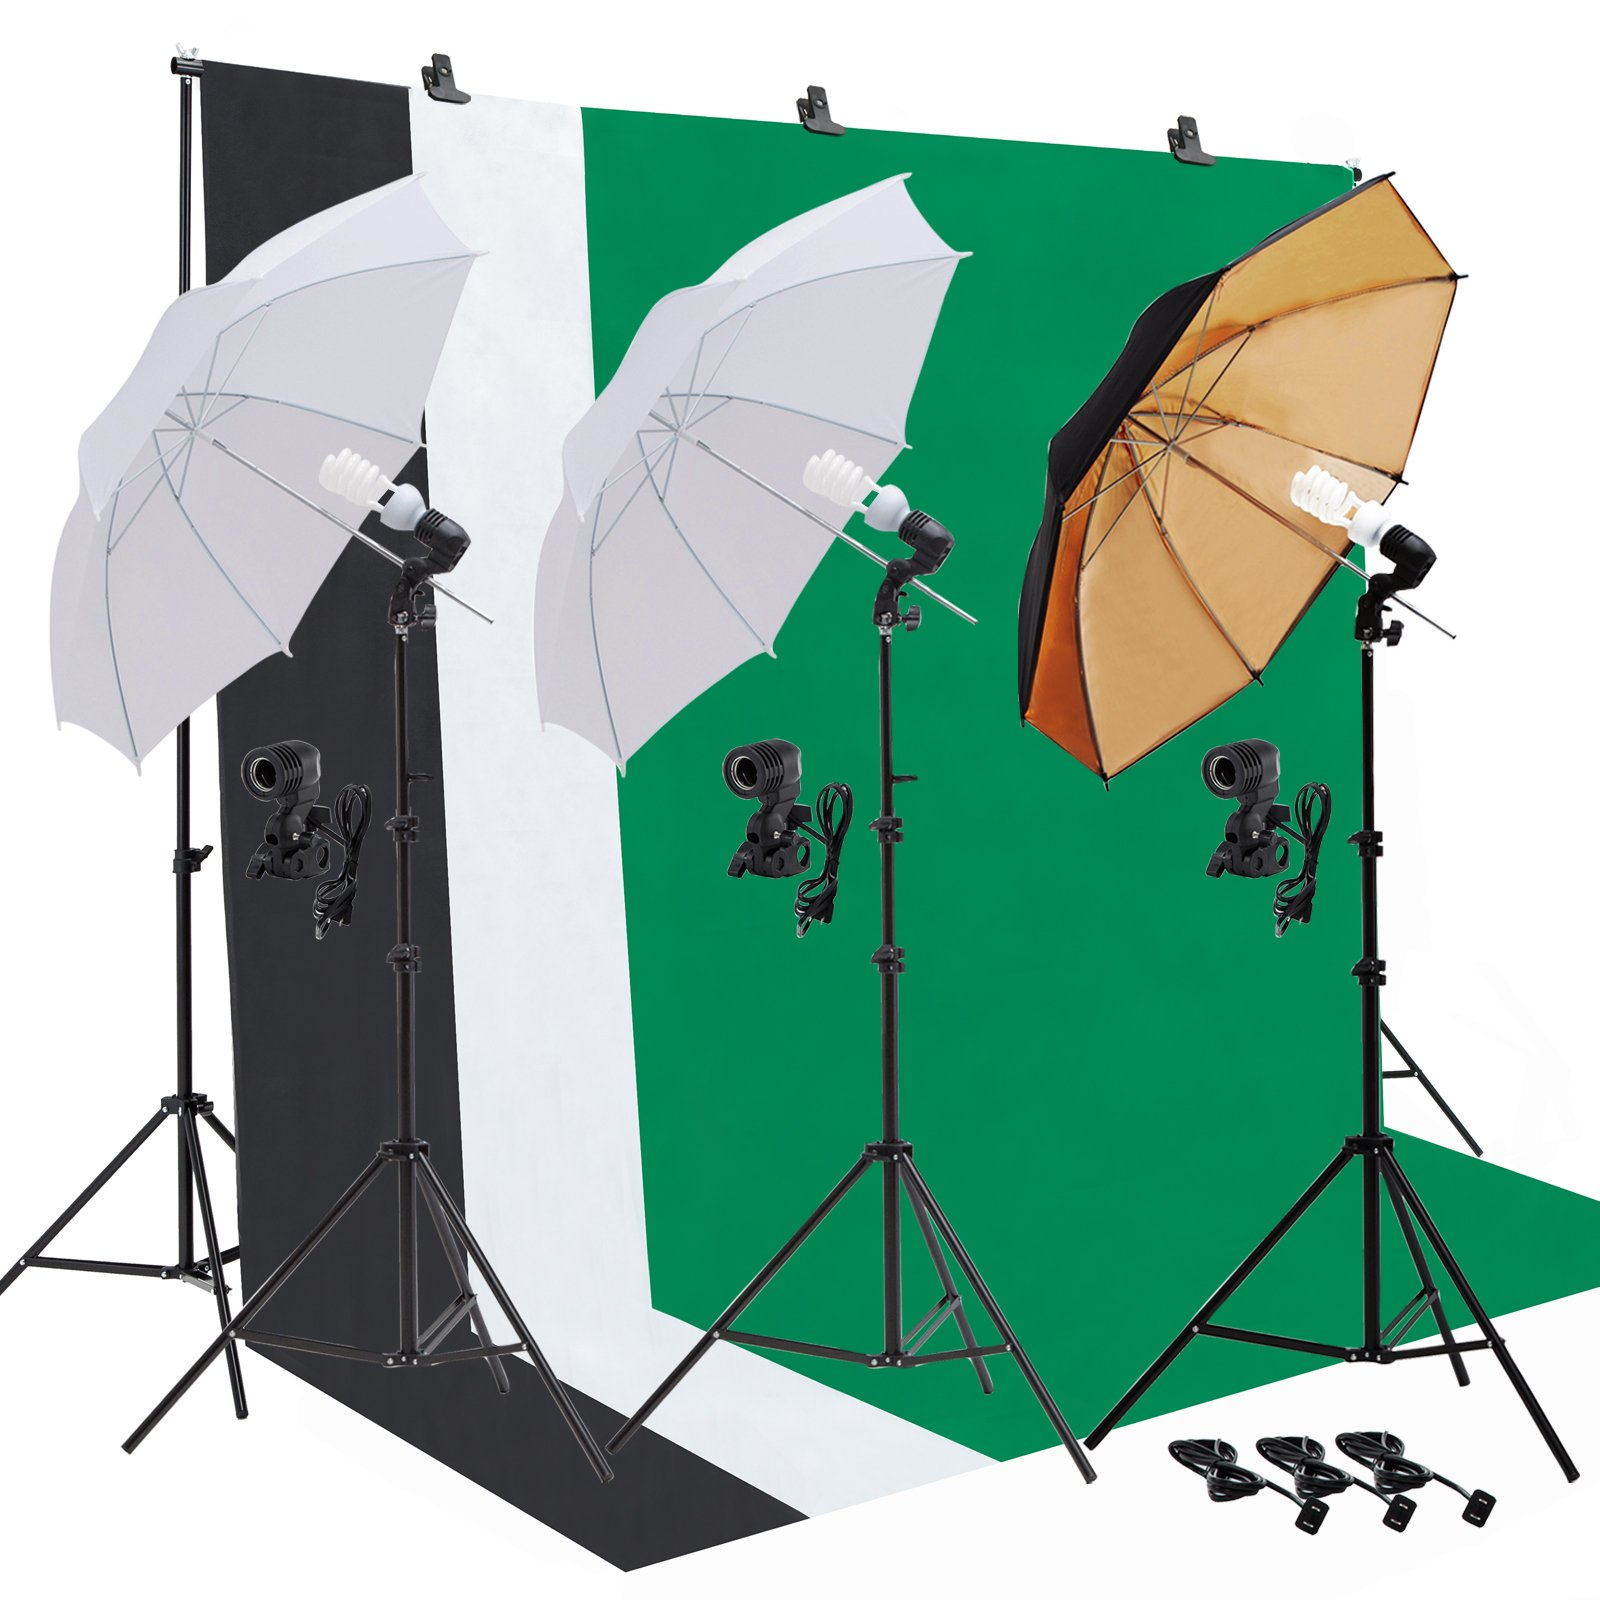 SUNCOO Video Studio Umbrella Lighting Kit,Green Screen with Stand, Continuous Lights with 10ft Background Support Stand System Backdrop Portable Bag, 3 Bulbs, Portfolio Shooting by SUNCOO (Image #1)